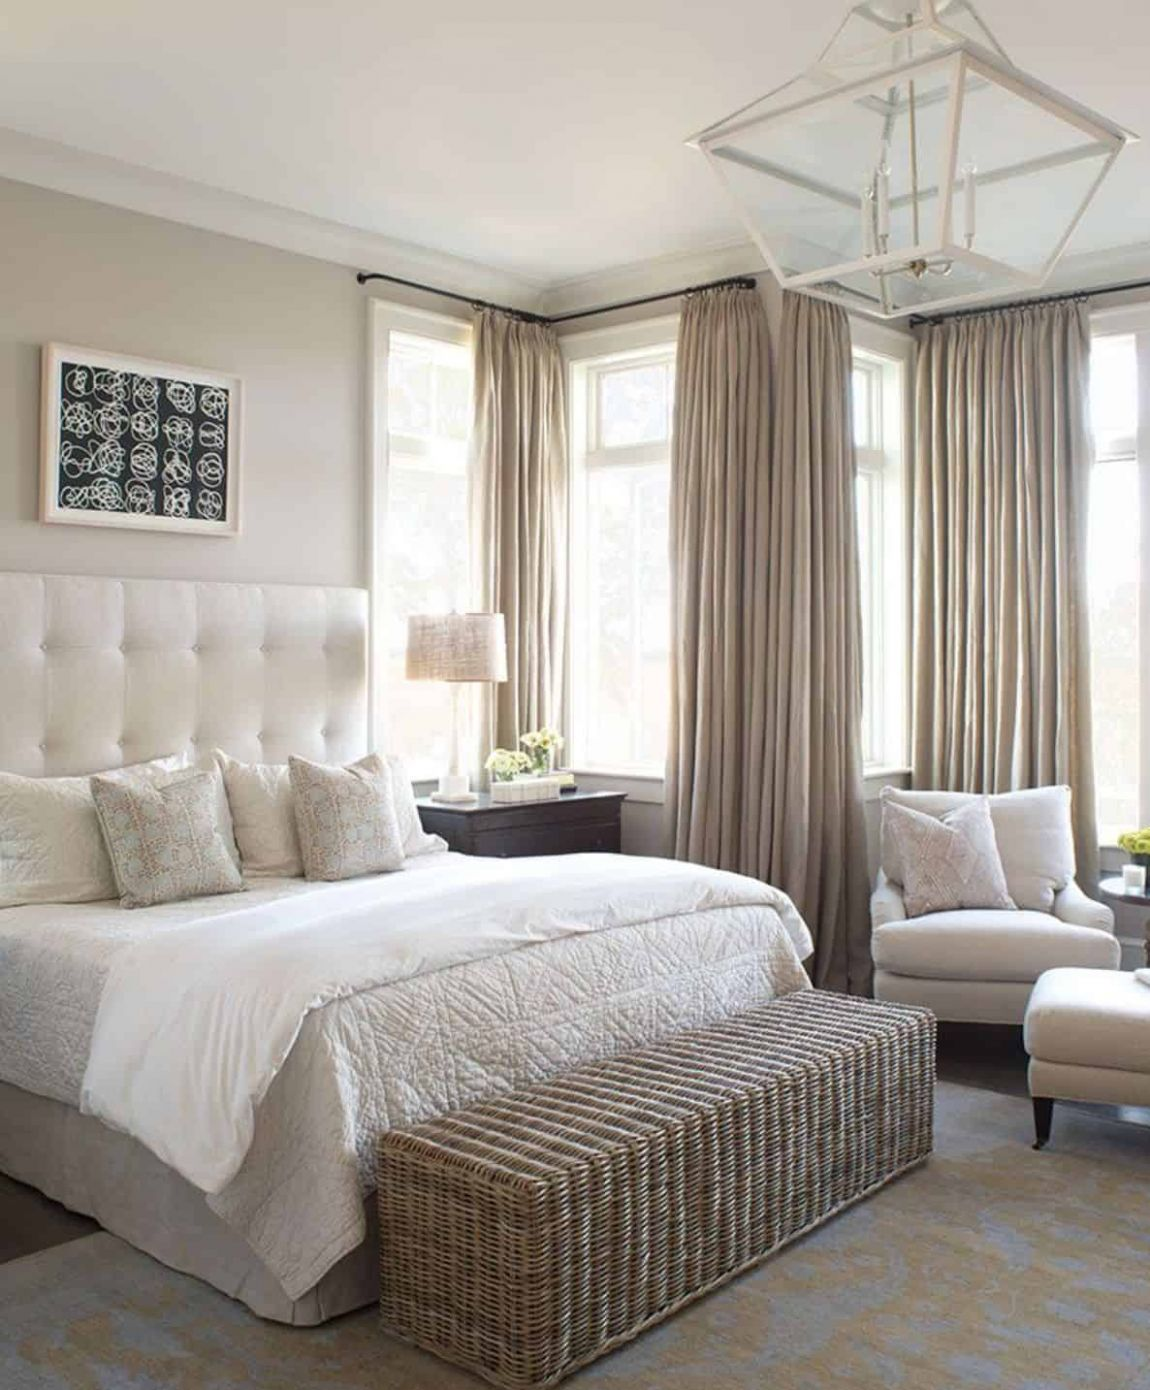 The Best Curtains To Enhance Your Bedroom - bedroom ideas curtains